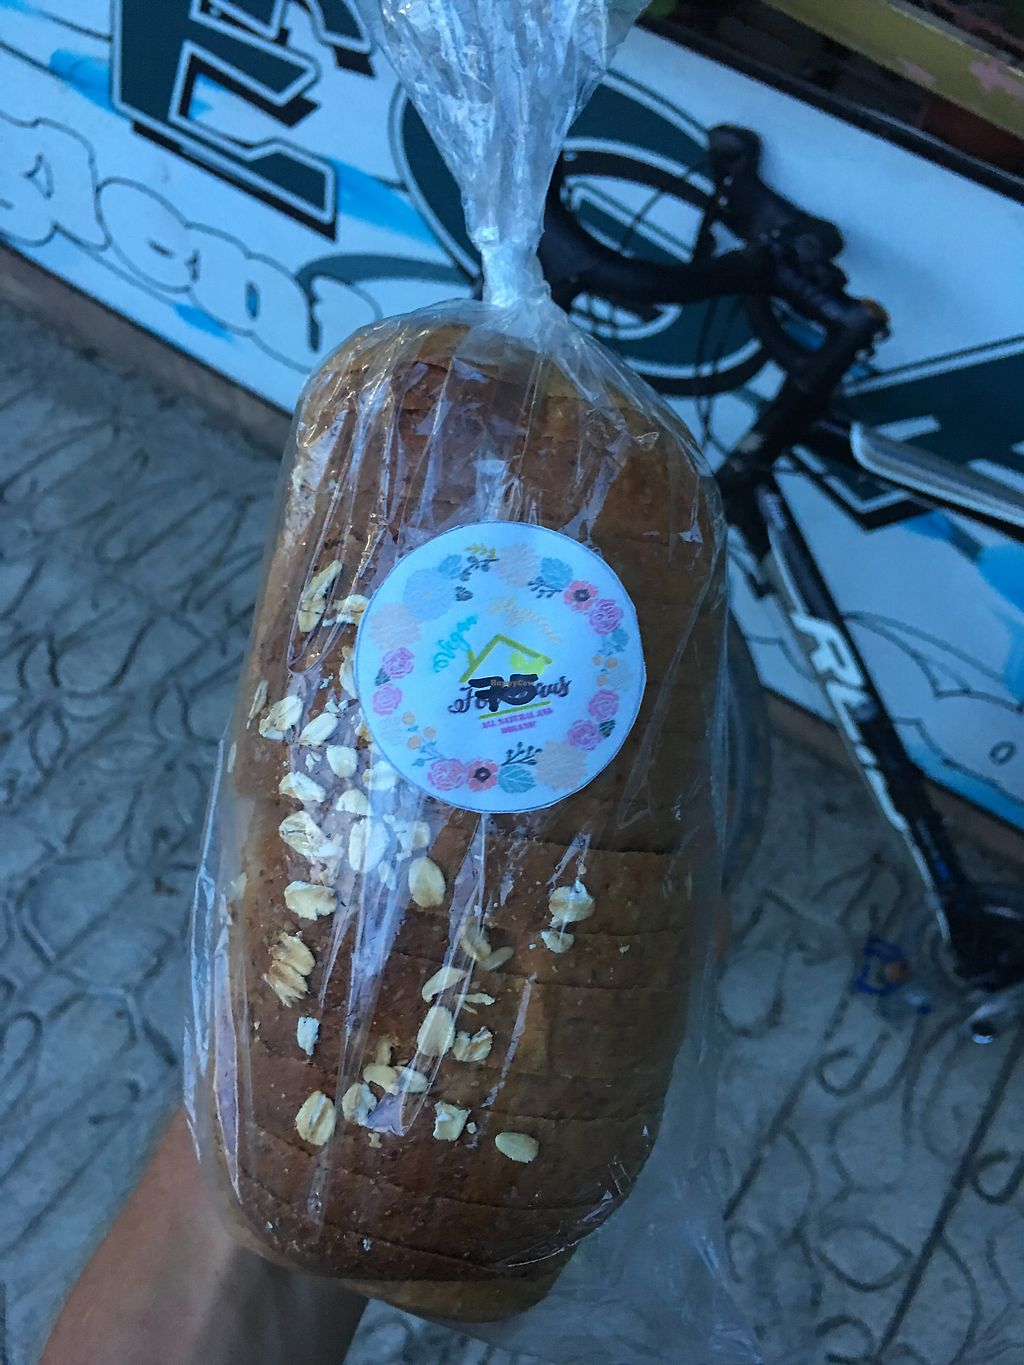 """Photo of Vegan Hygienic Foodhaus  by <a href=""""/members/profile/Durianrider"""">Durianrider</a> <br/>Fresh bread vegan? <br/> October 6, 2017  - <a href='/contact/abuse/image/34114/312228'>Report</a>"""